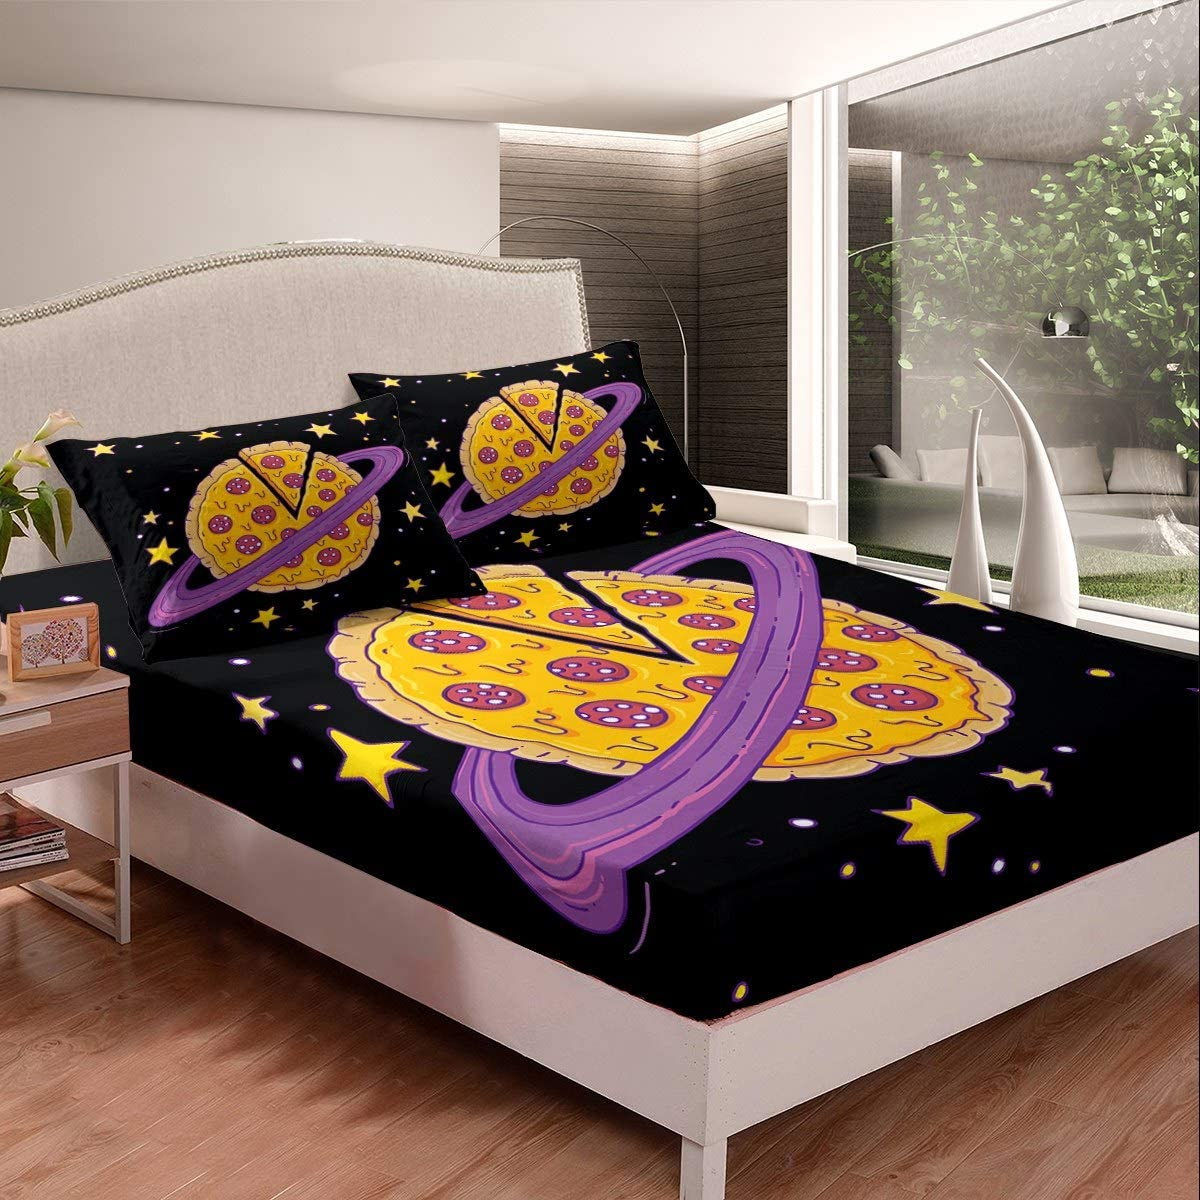 Sheet Set Full Size Popular products 3D Abstract Pentagra Sky Max 85% OFF Planet Pizza Starry